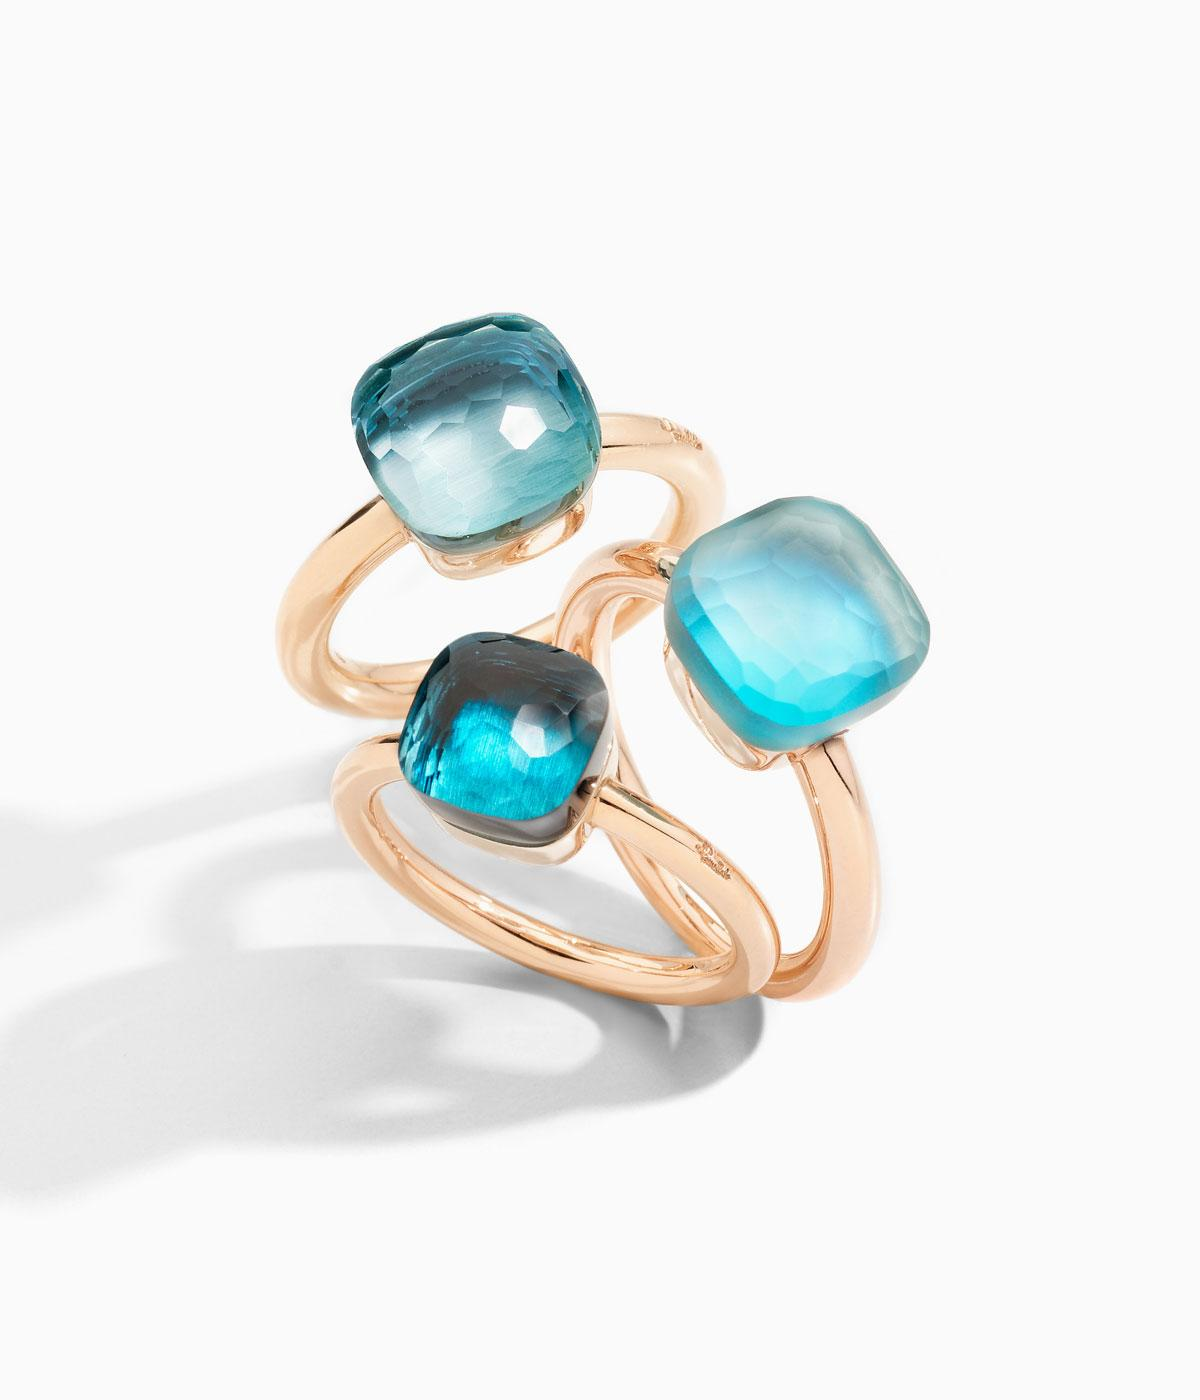 Three gold rings with clear blue topaz on